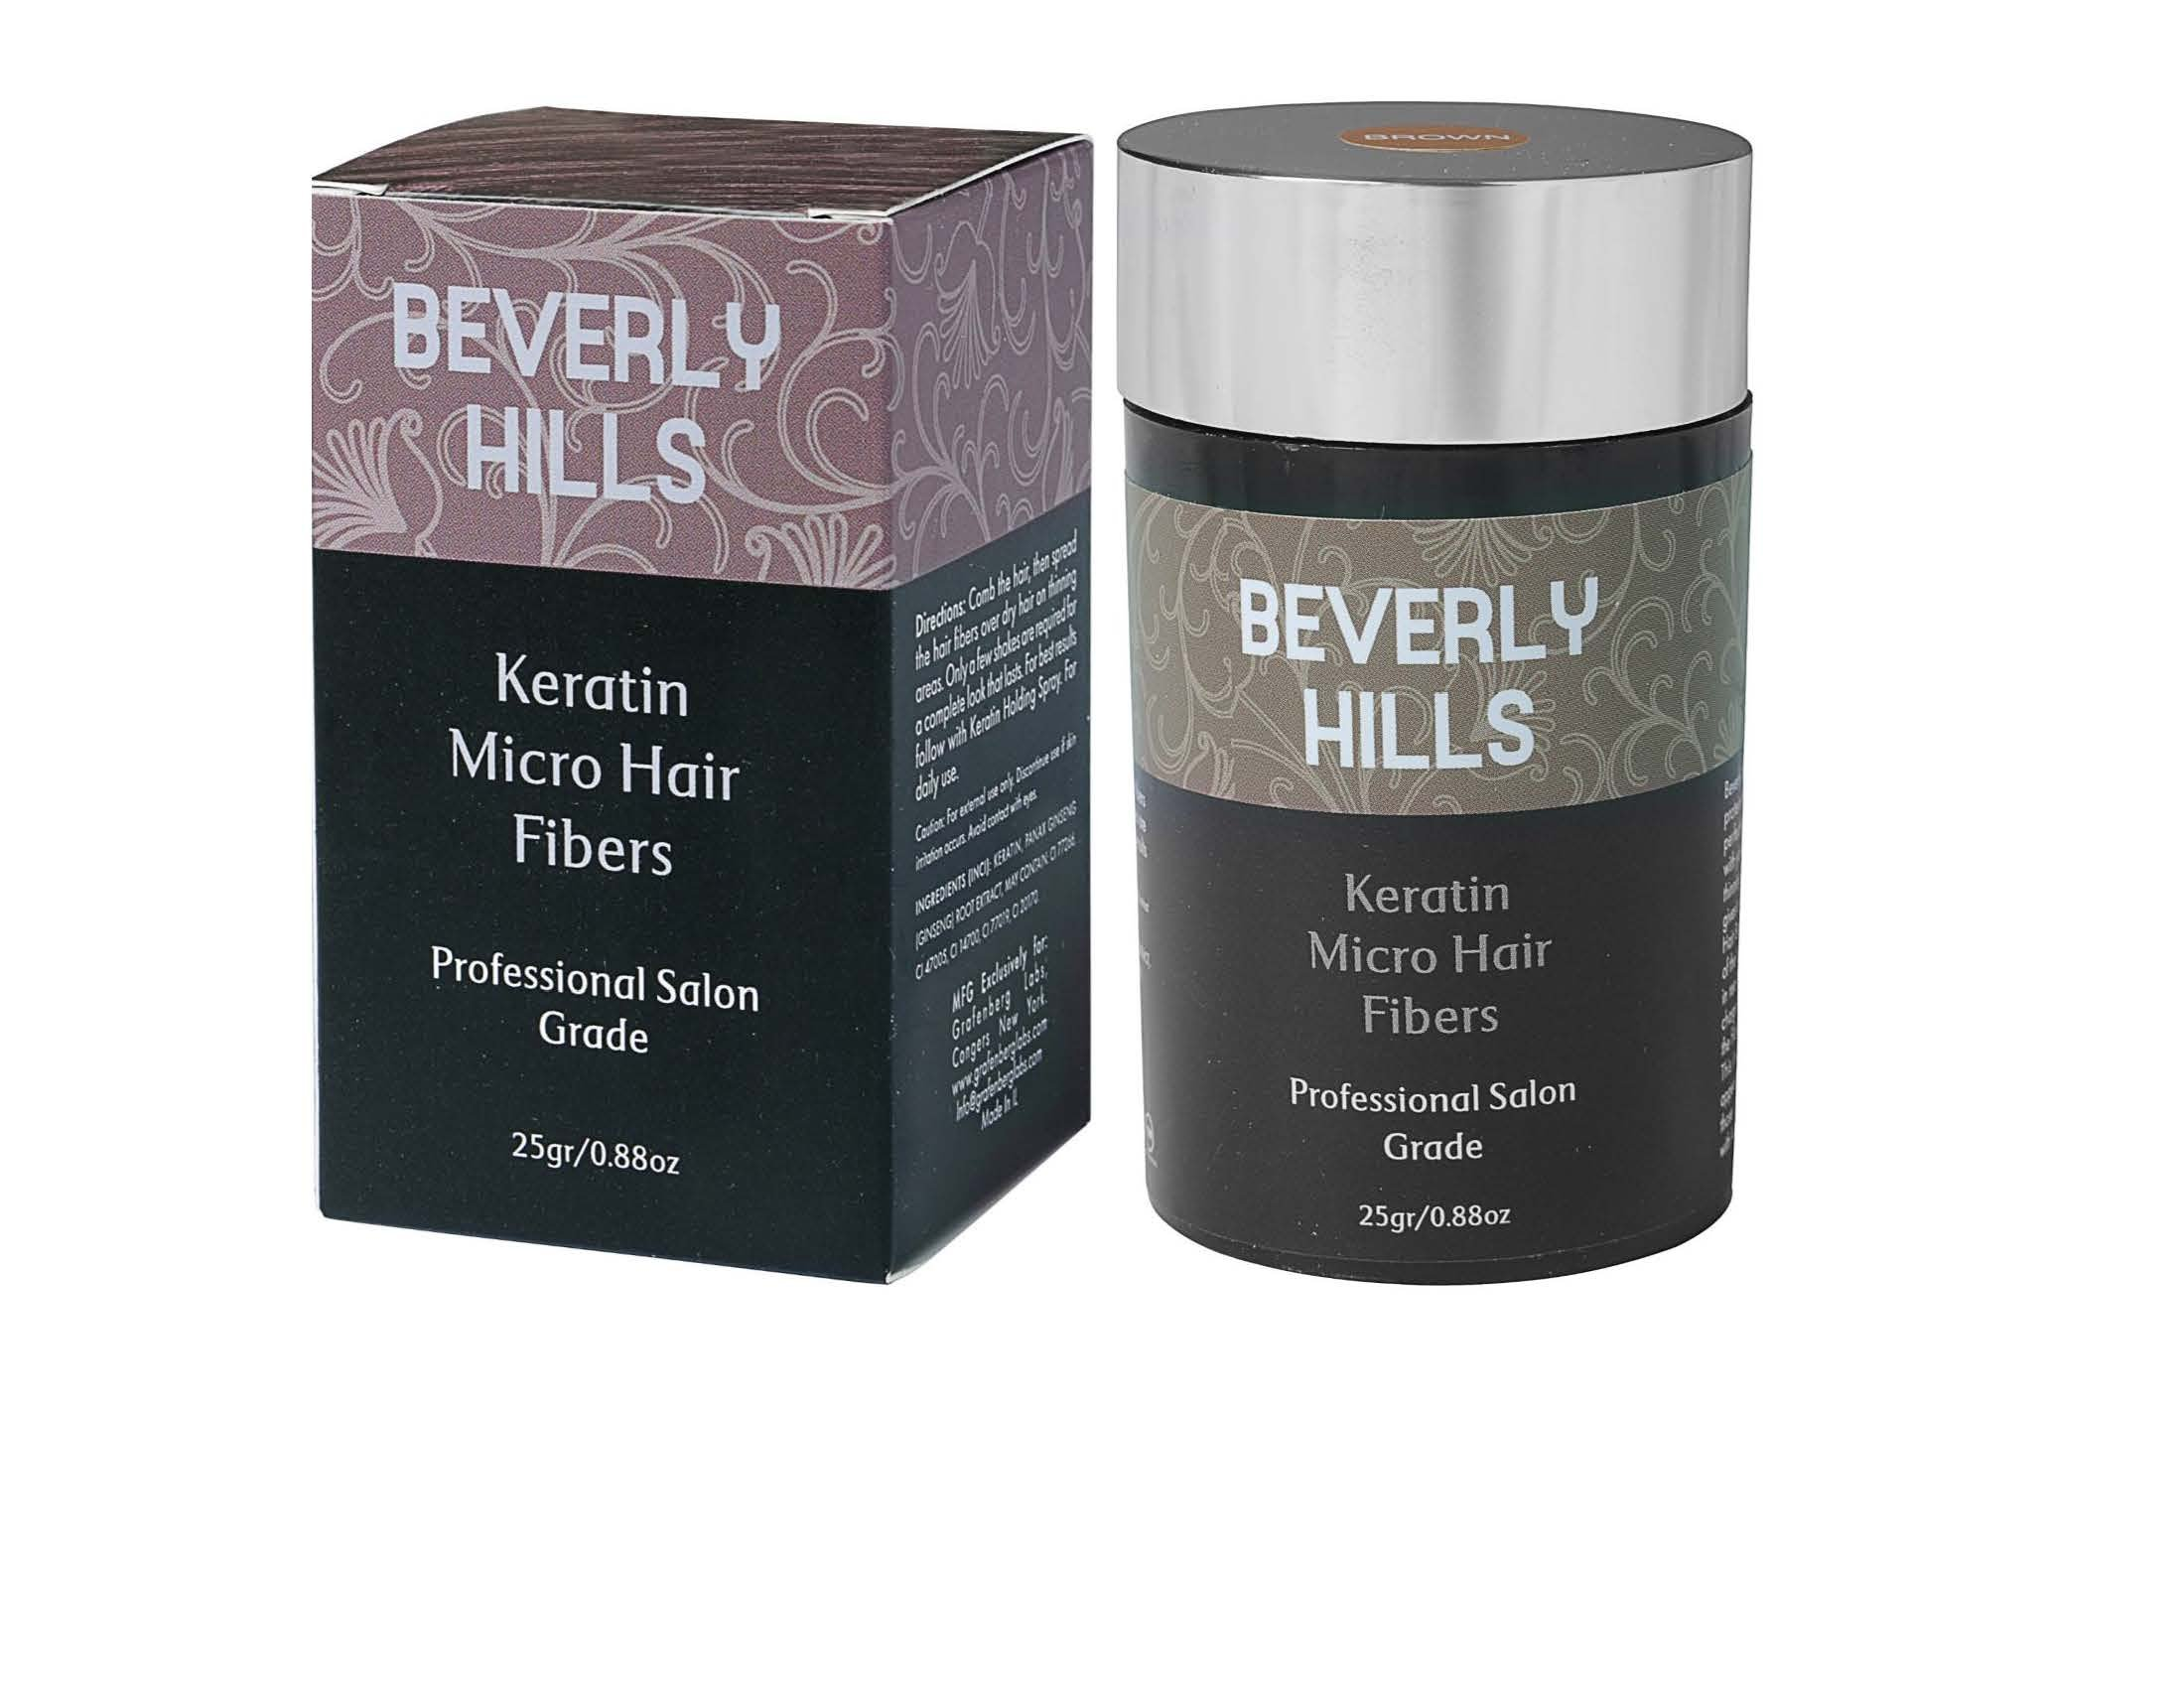 Hair Building Keratin Fibers - Conceal Hair Loss, Add Thickness and Body, and Thicken Thinning Roots - for Men and Women by Beverly Hills (Black) by Beverly Hills